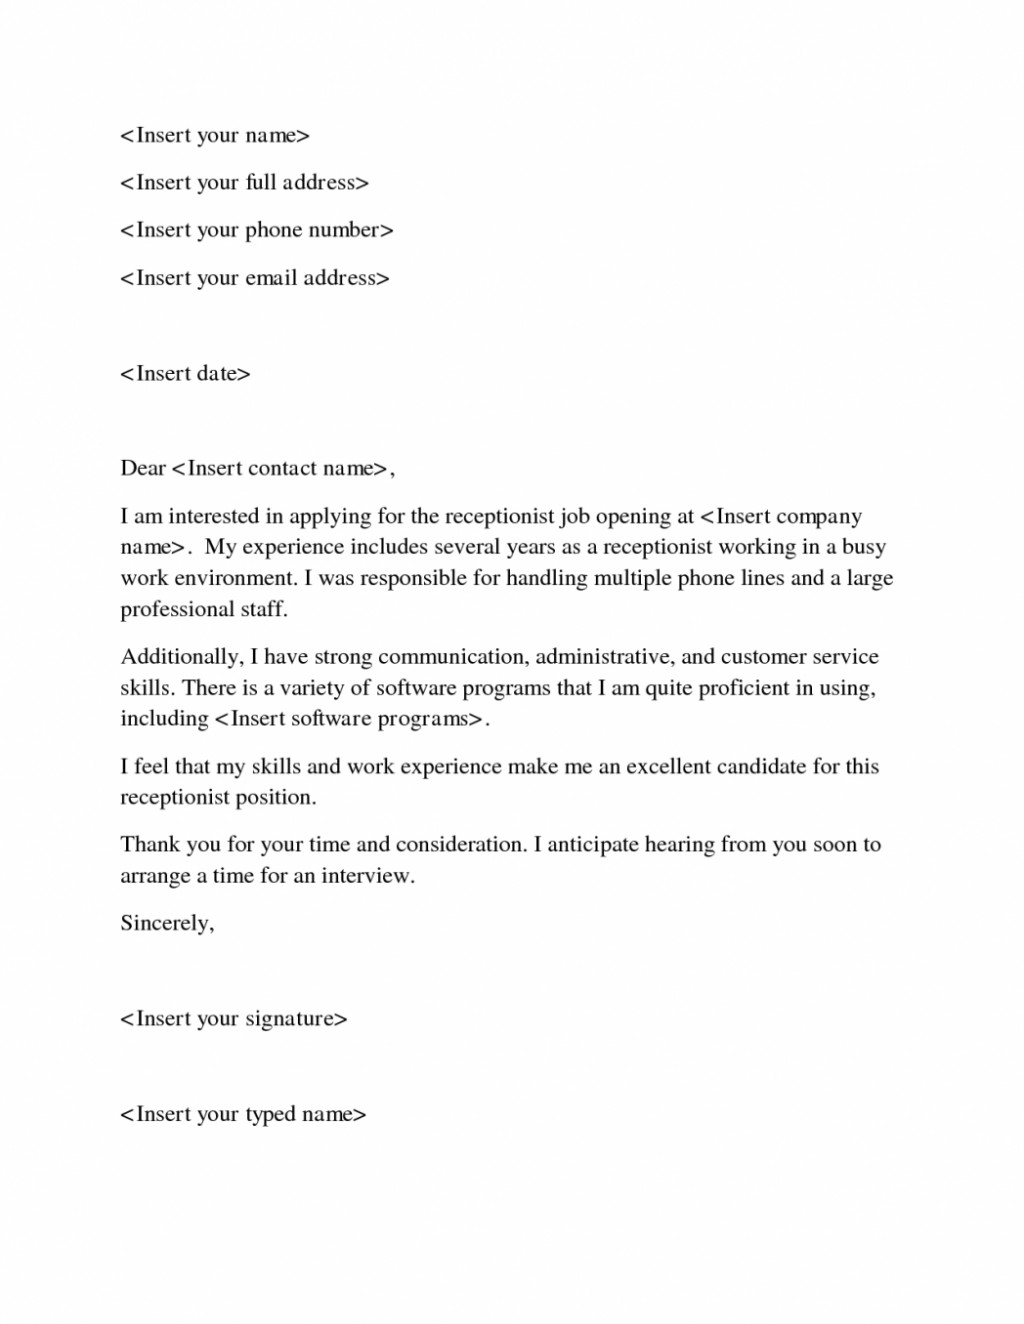 006 Essay Example Social Commentary Simple Cover Letter Help Receptionist Resume Top Ib Analysis Examples Reflective Critical Meta Dreaded Art The Great Gatsby Large